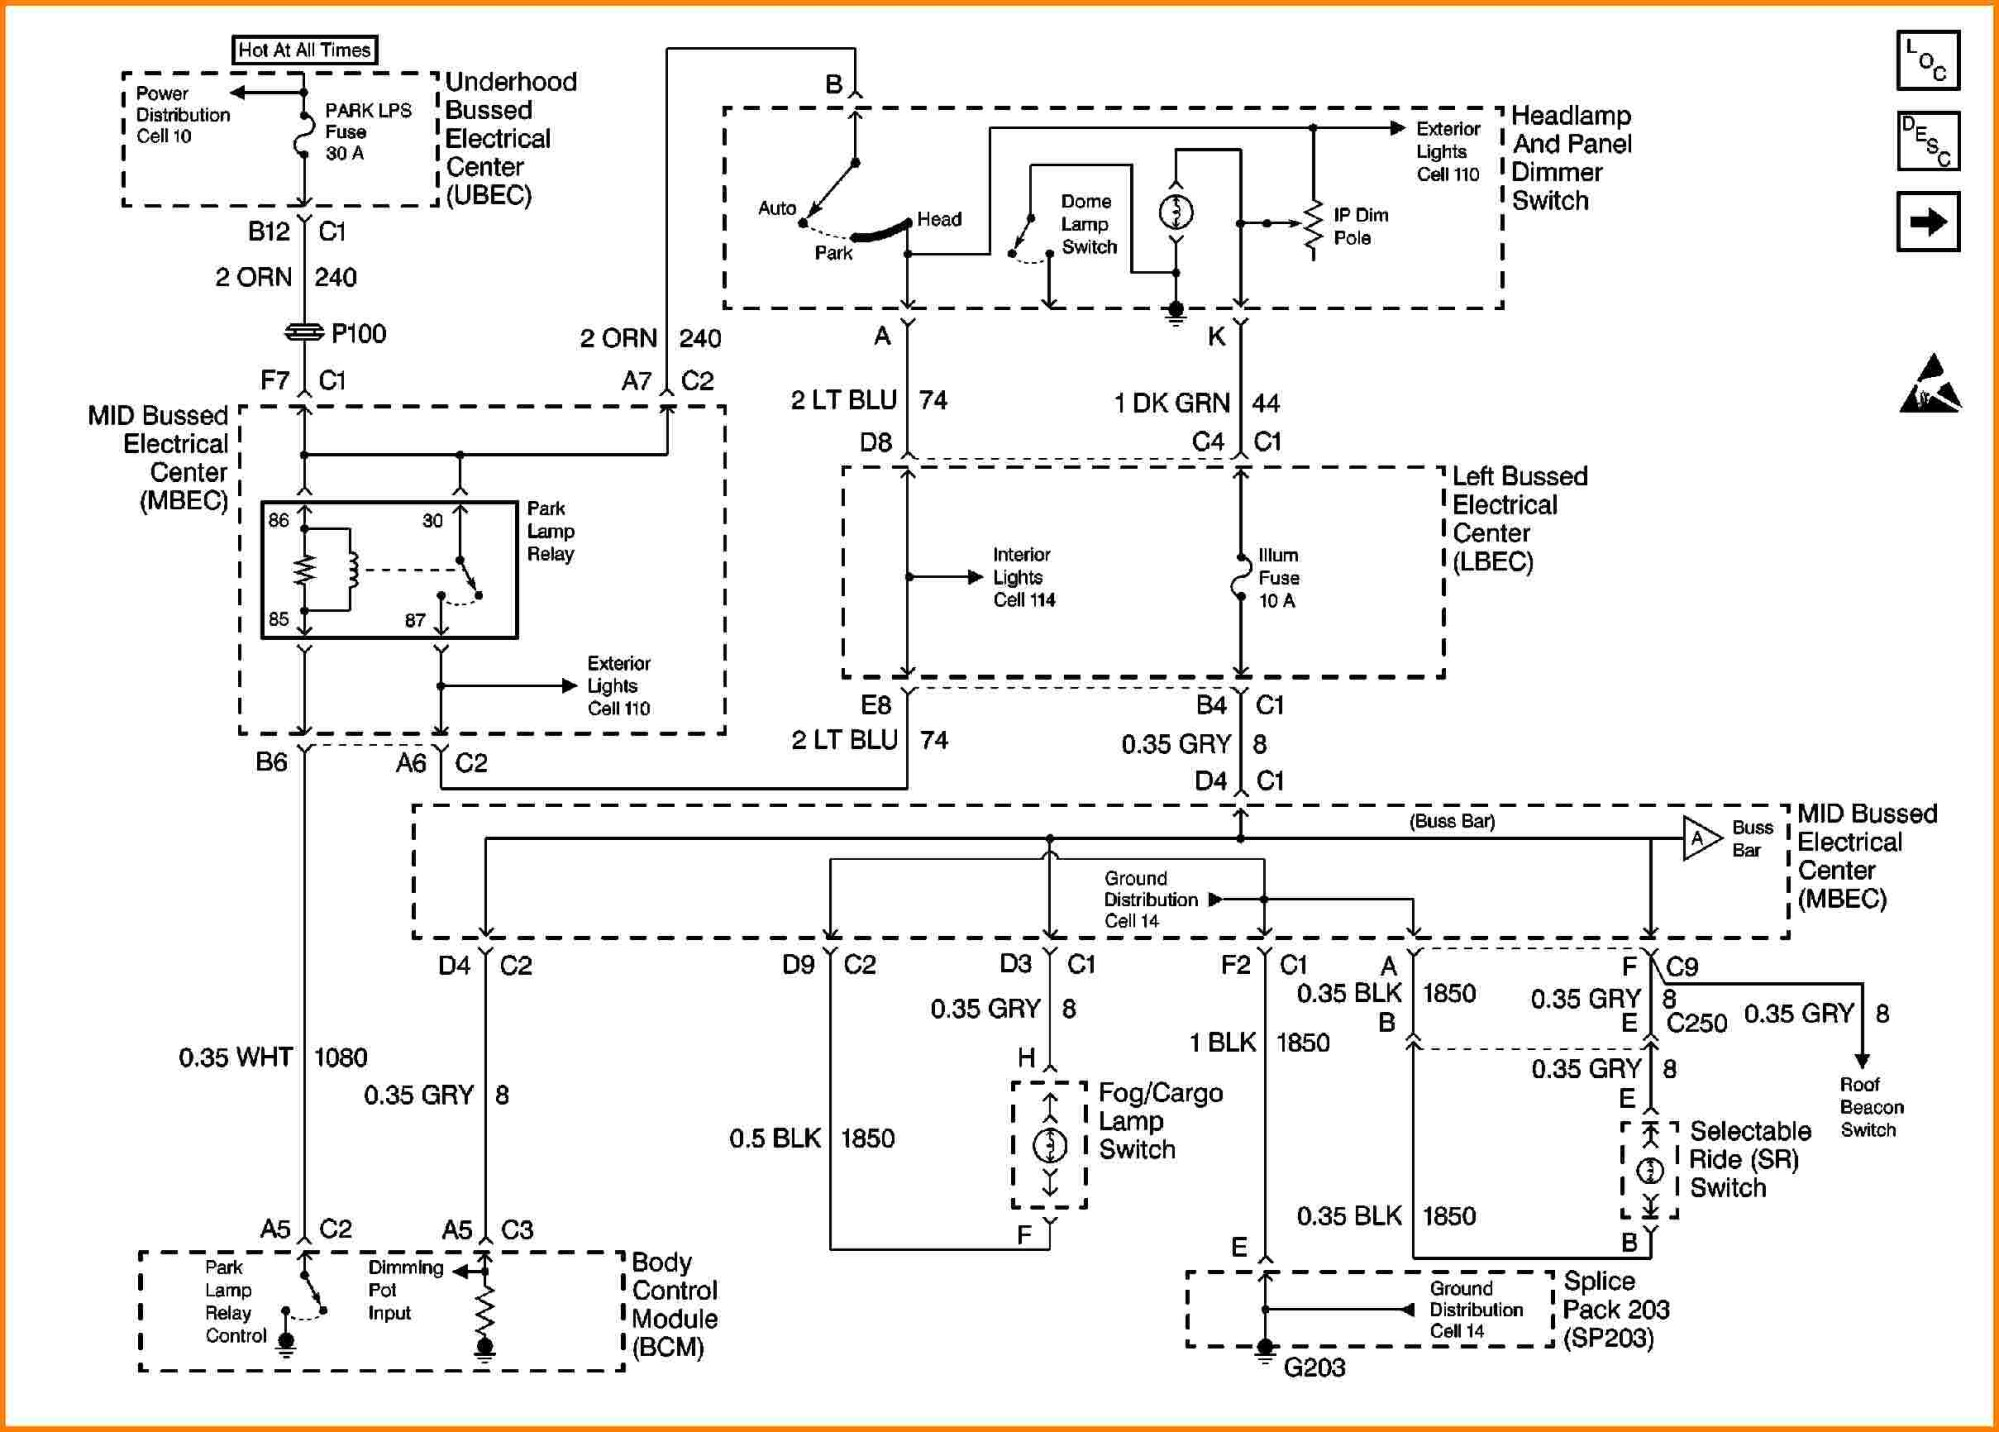 hight resolution of backupassist 2010 gmc sierra wiring diagram chevy silverado drawing at getdrawings com free for